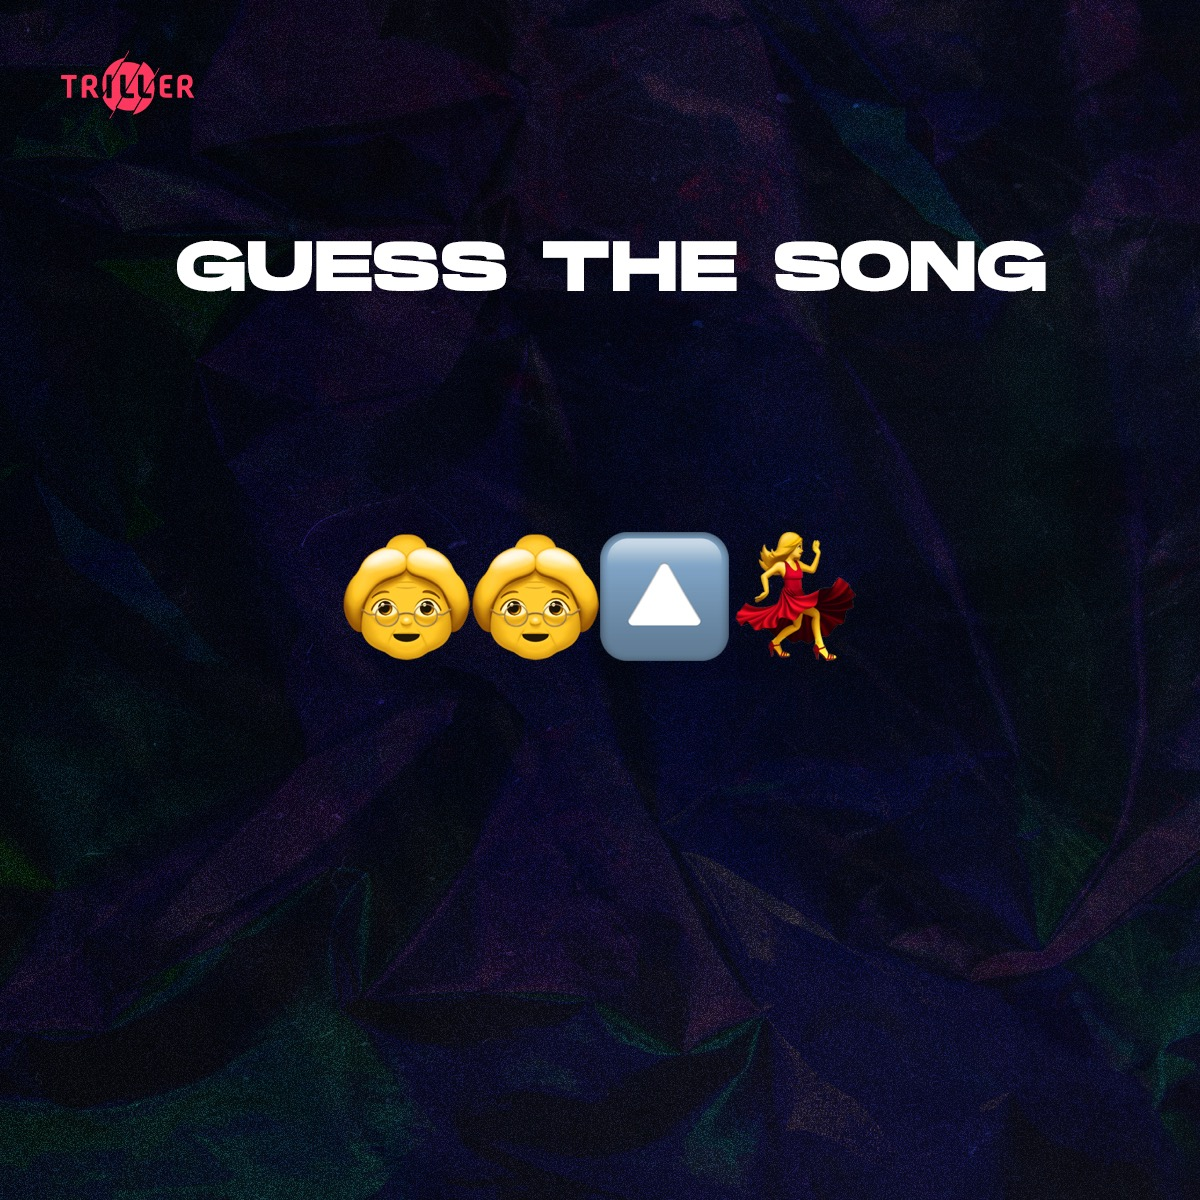 What are you waiting for, get up and guess. Did you? Let us know in the comments below.   #triller #trillerindia #guesstheemoji